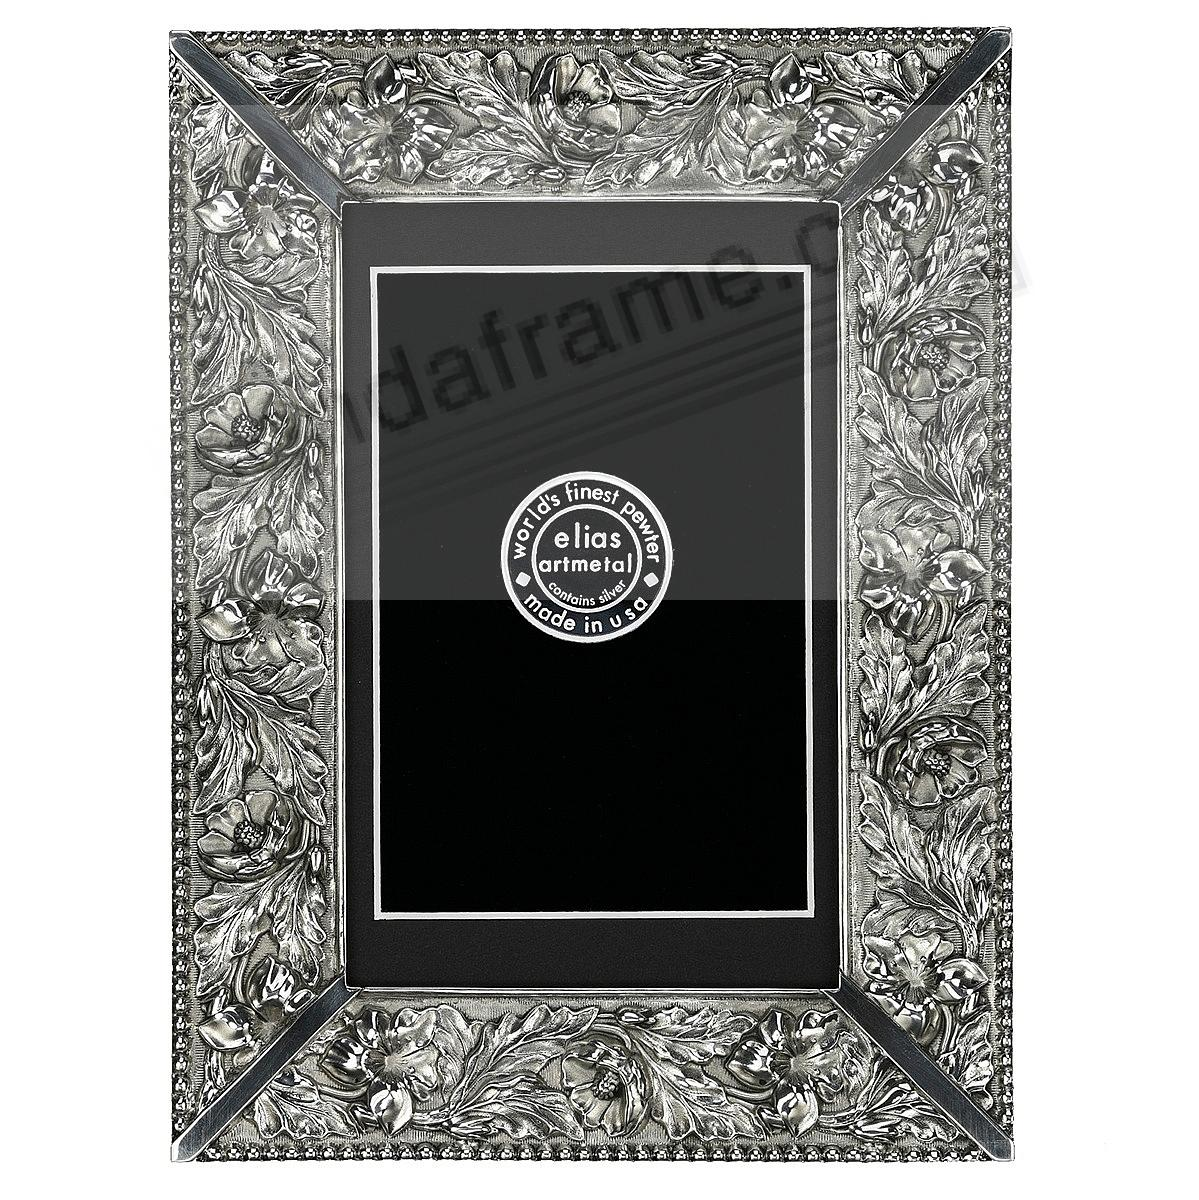 wedding flowers fine pewter 4x63x5 frameby elias artmetal